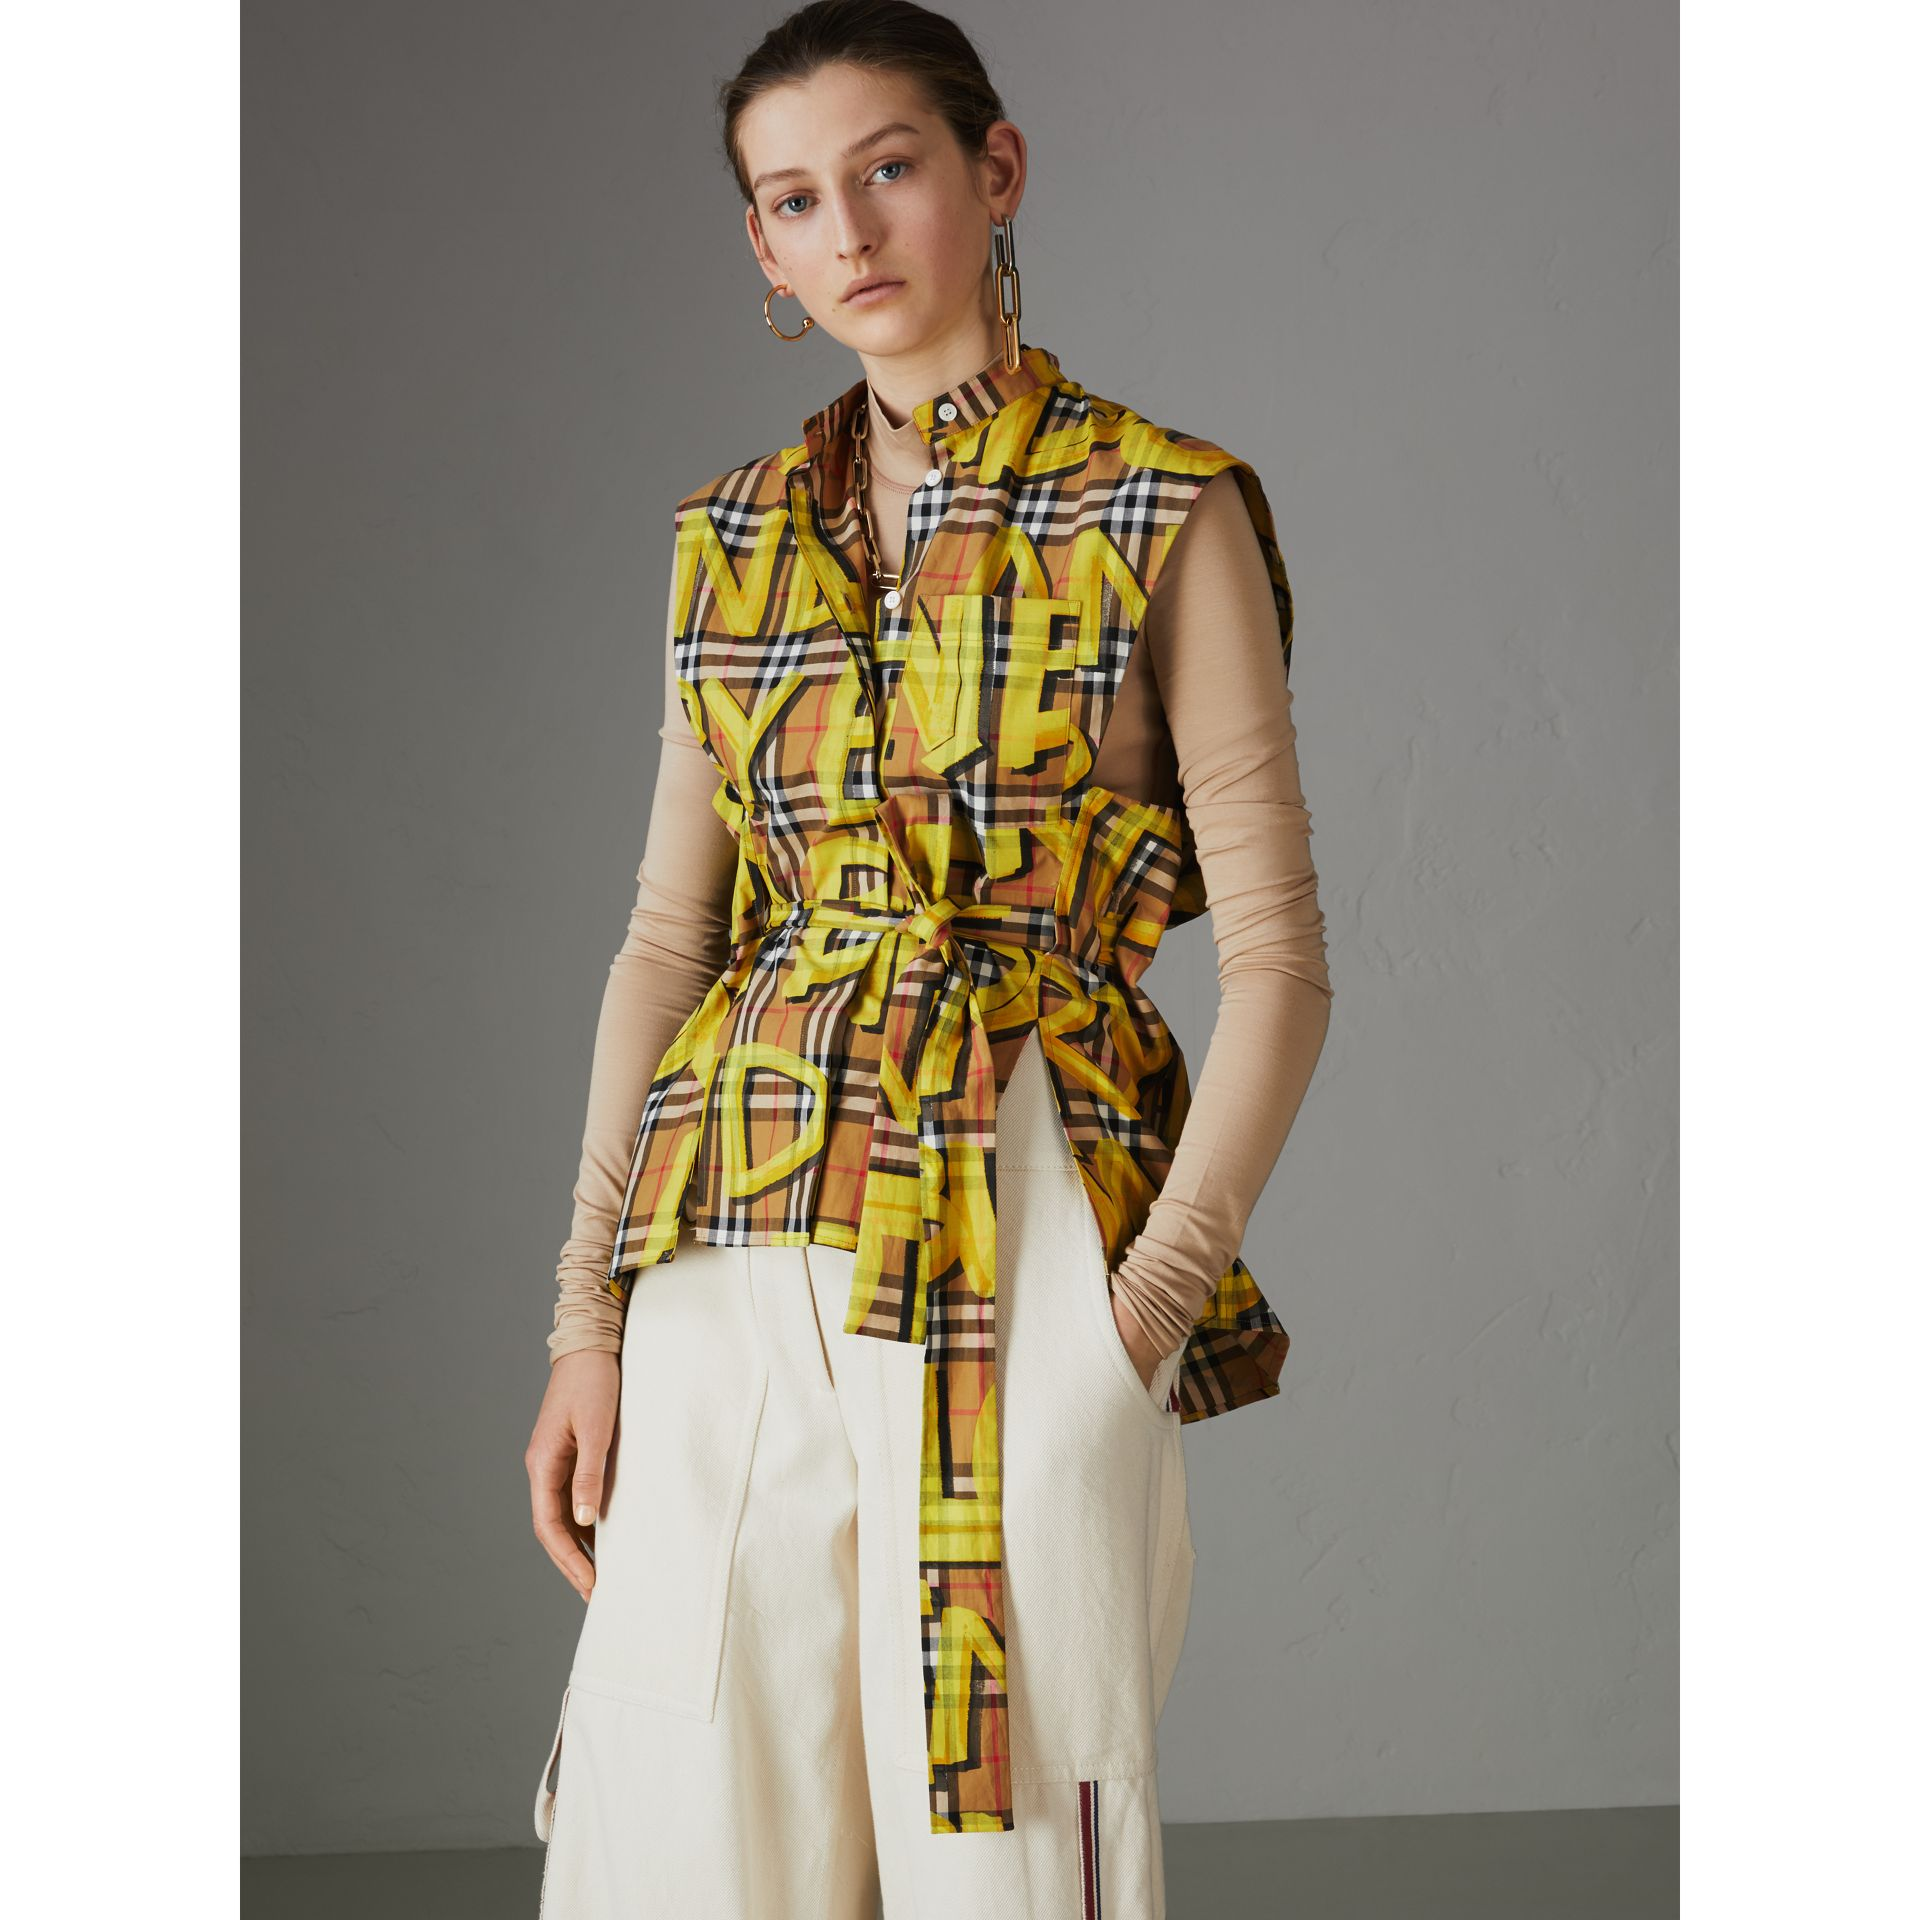 Sleeveless Graffiti Print Vintage Check Cotton Shirt in Bright Yellow - Women | Burberry Singapore - gallery image 4